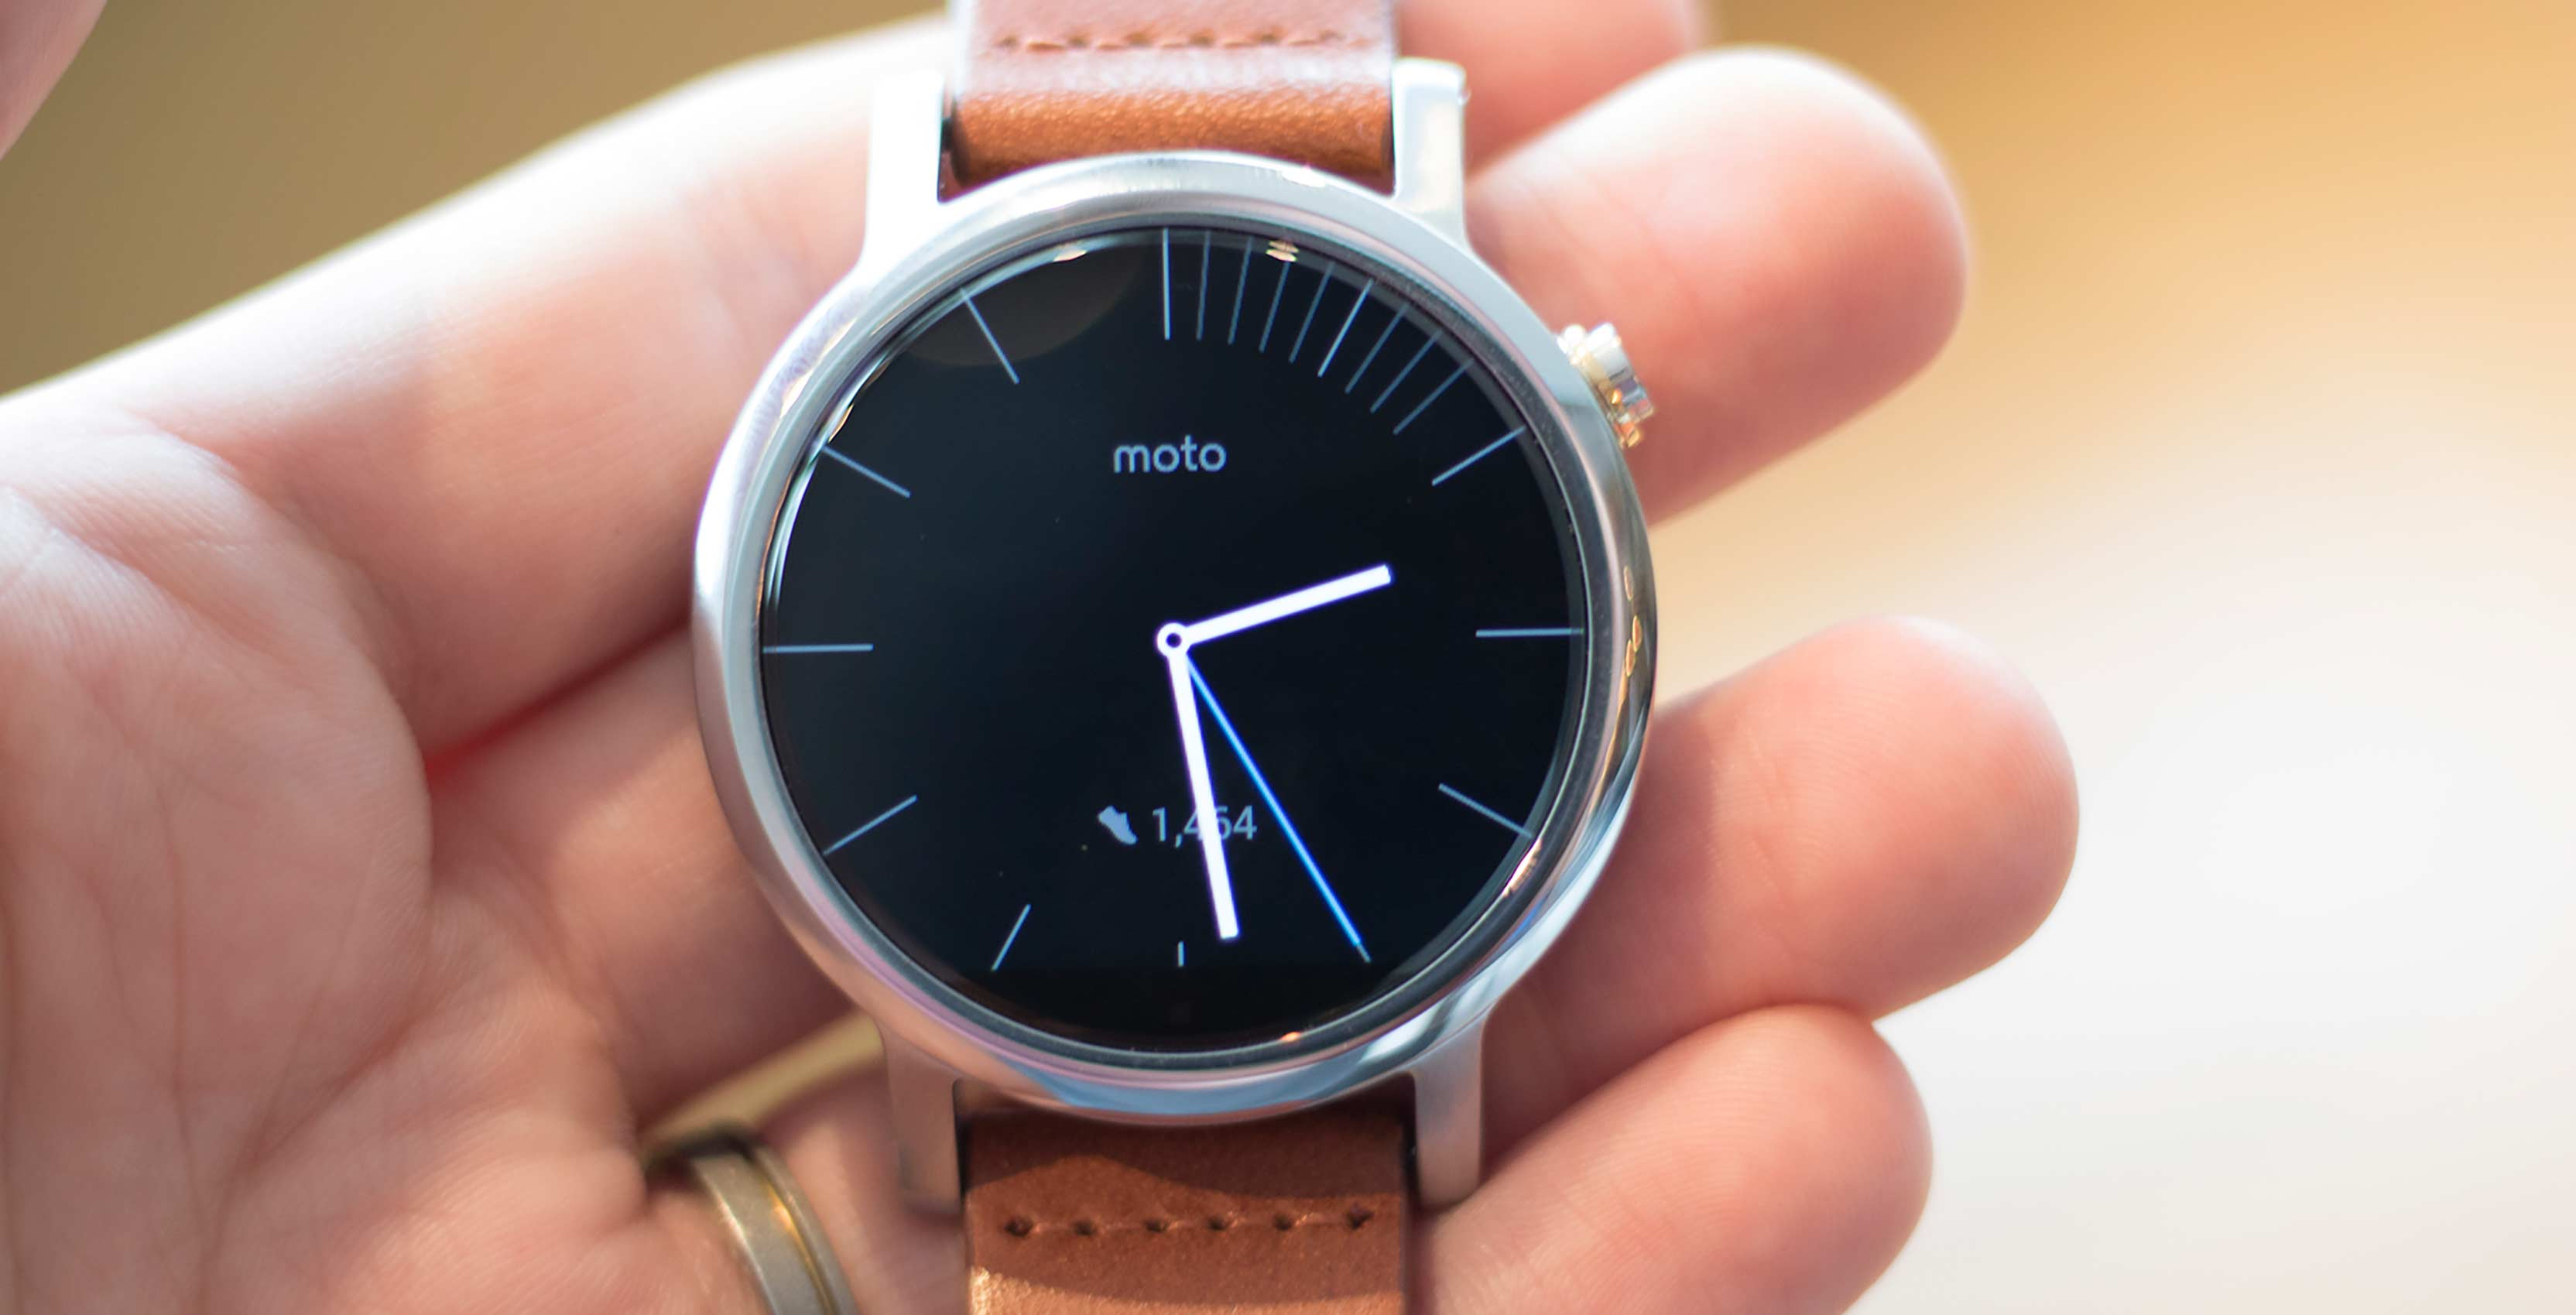 Moto 360 2nd Gen in hand